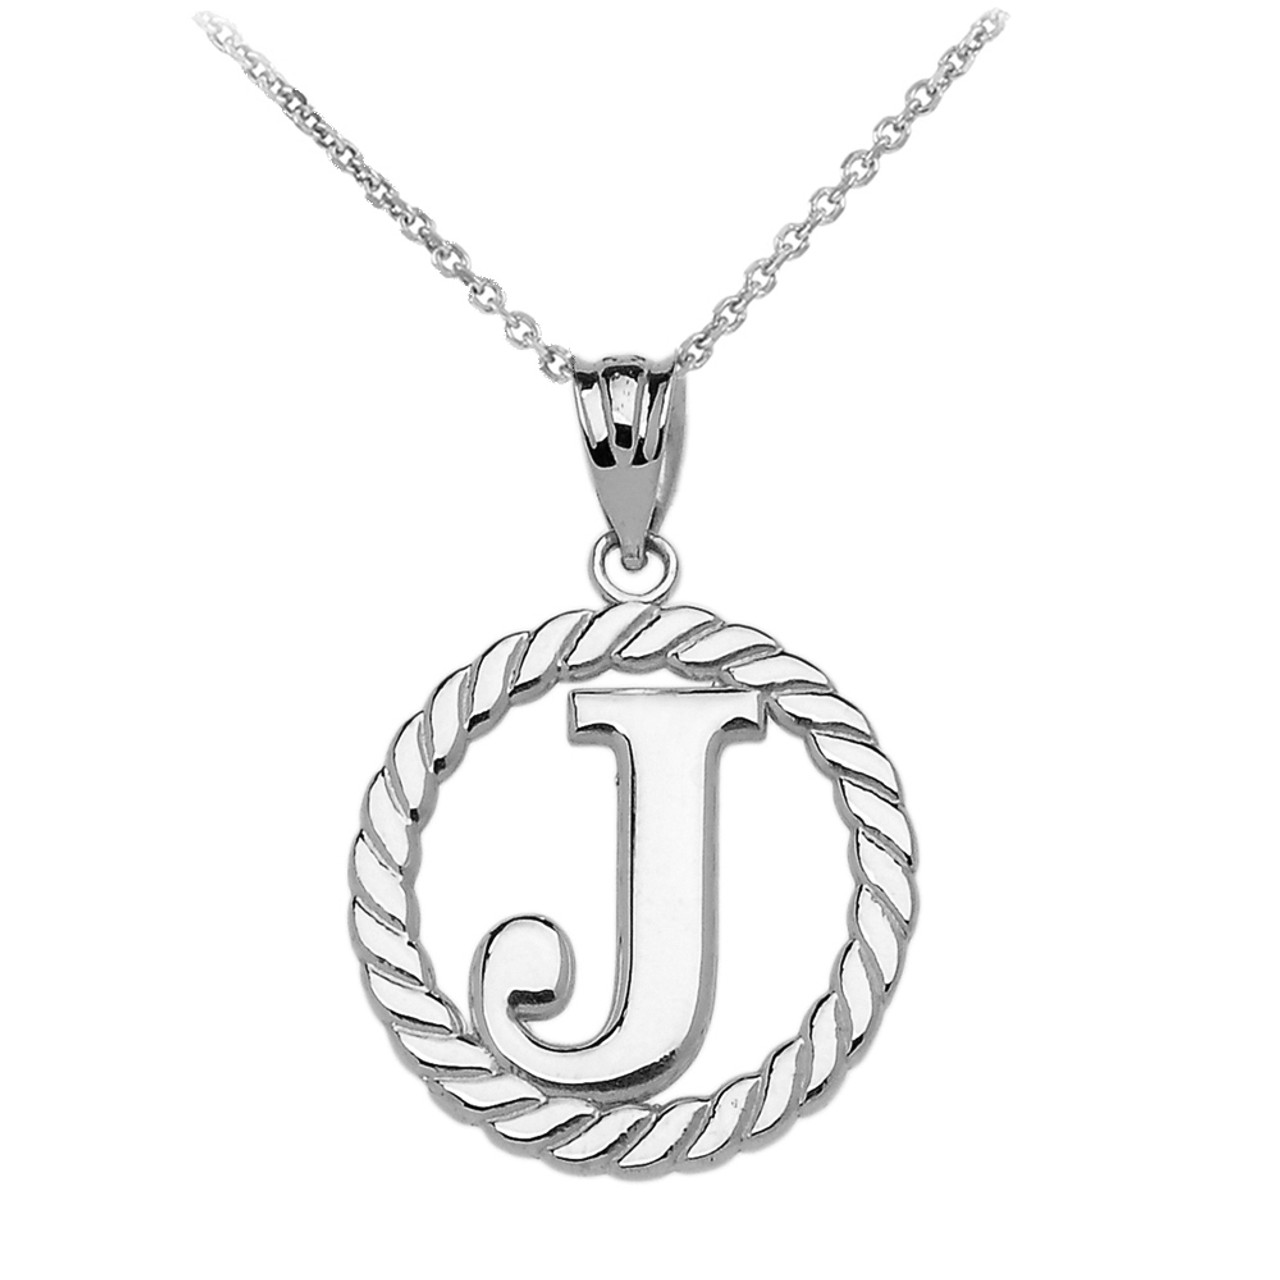 White gold j initial in rope circle pendant necklace aloadofball Gallery